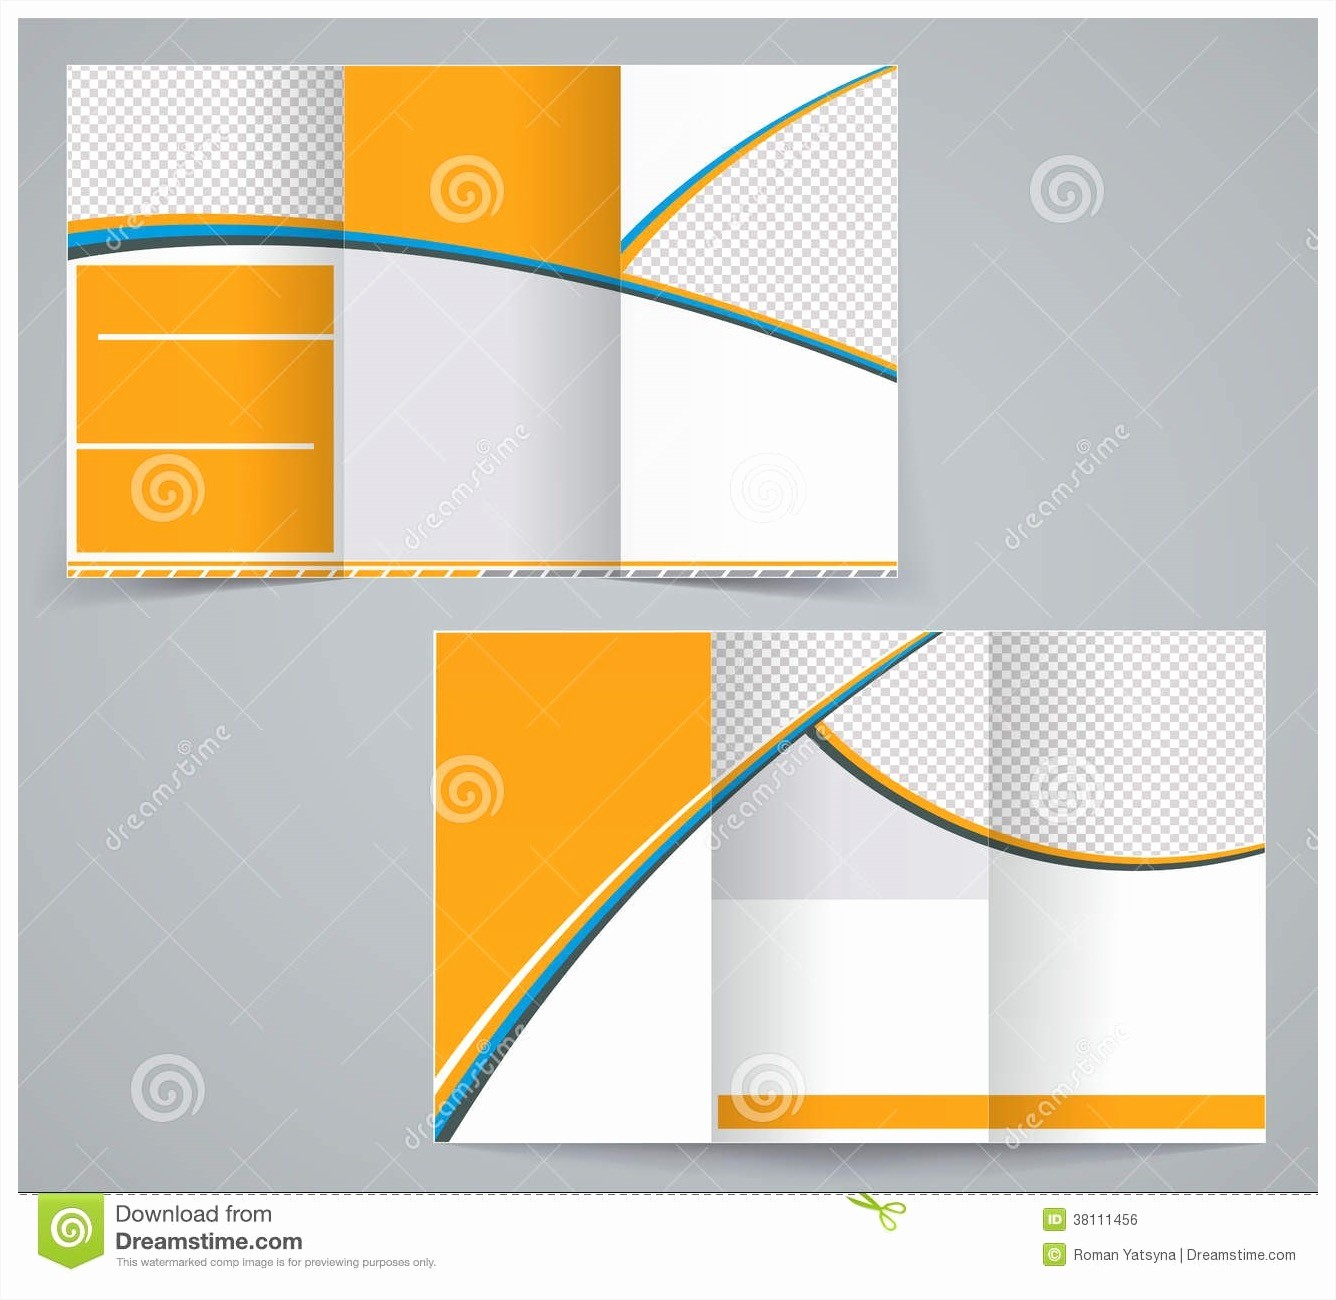 Microsoft Tri Fold Brochure Templates Awesome Blank Brochure Templates Mughals